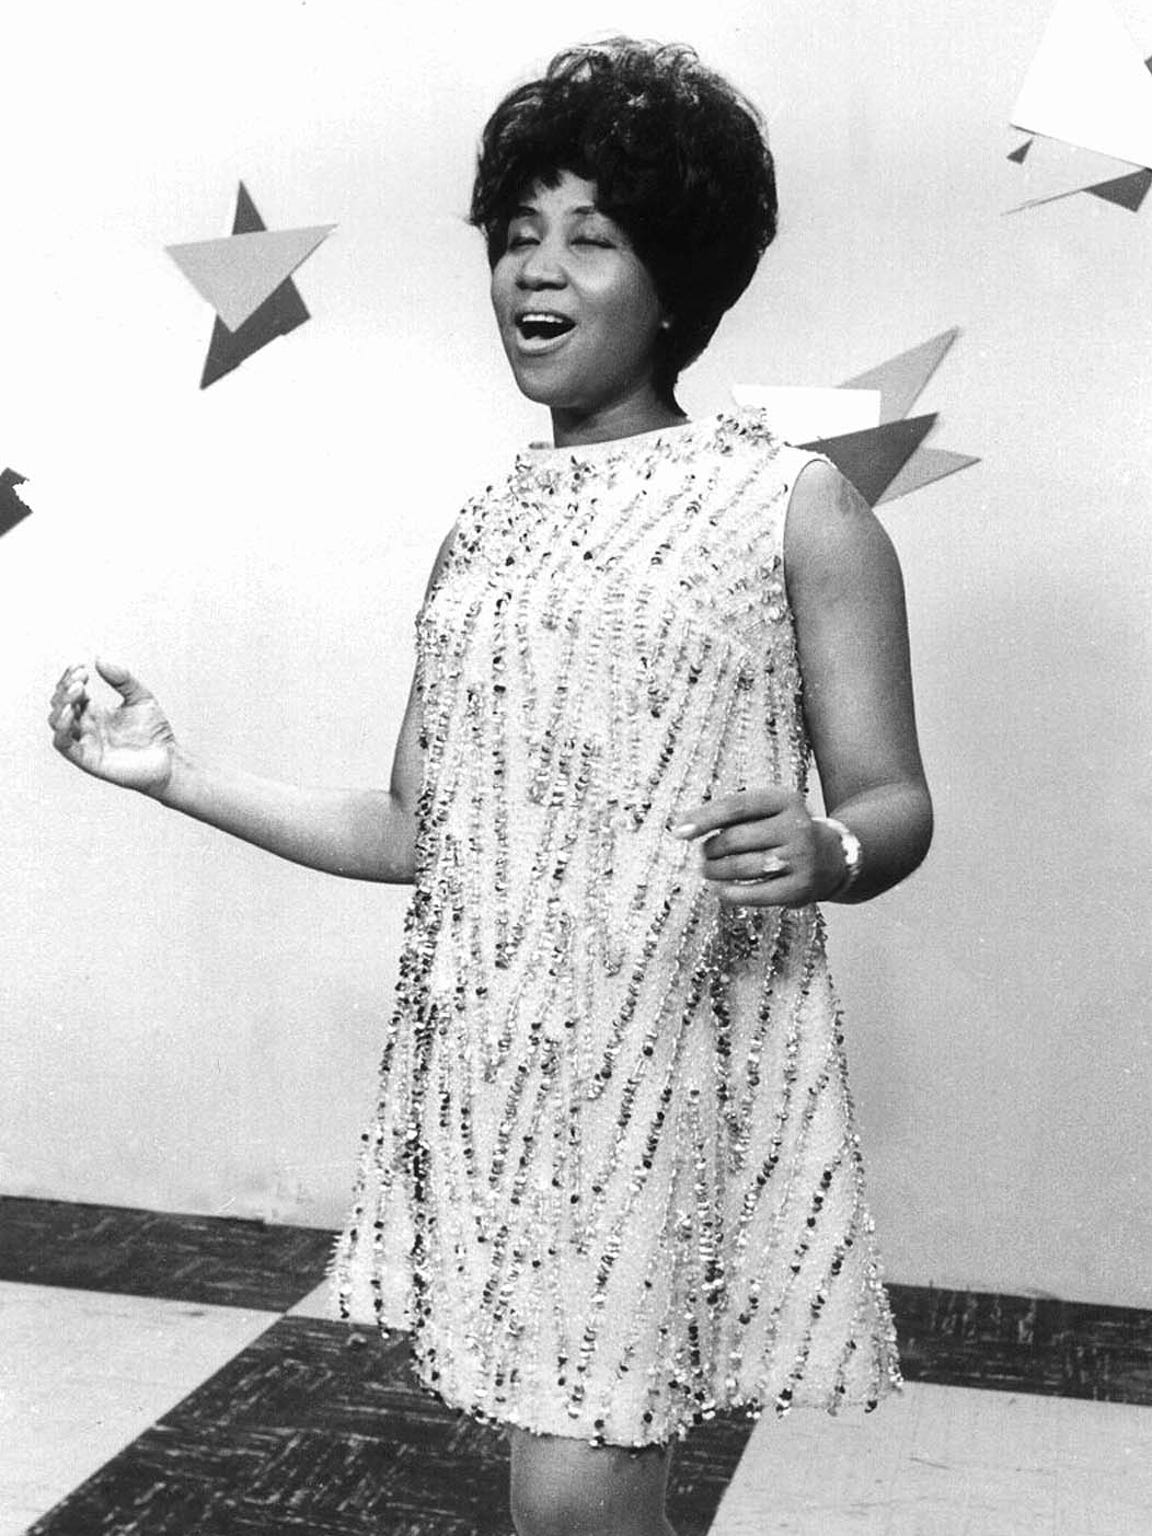 Aretha Franklin's pop music recording career began when she signed a record deal in 1961 with CBS/Columbia, but her career further expanded when she signed with Atlantic Records in 1967. By the end of the 1960s Franklin was at her peak as a vocalist.